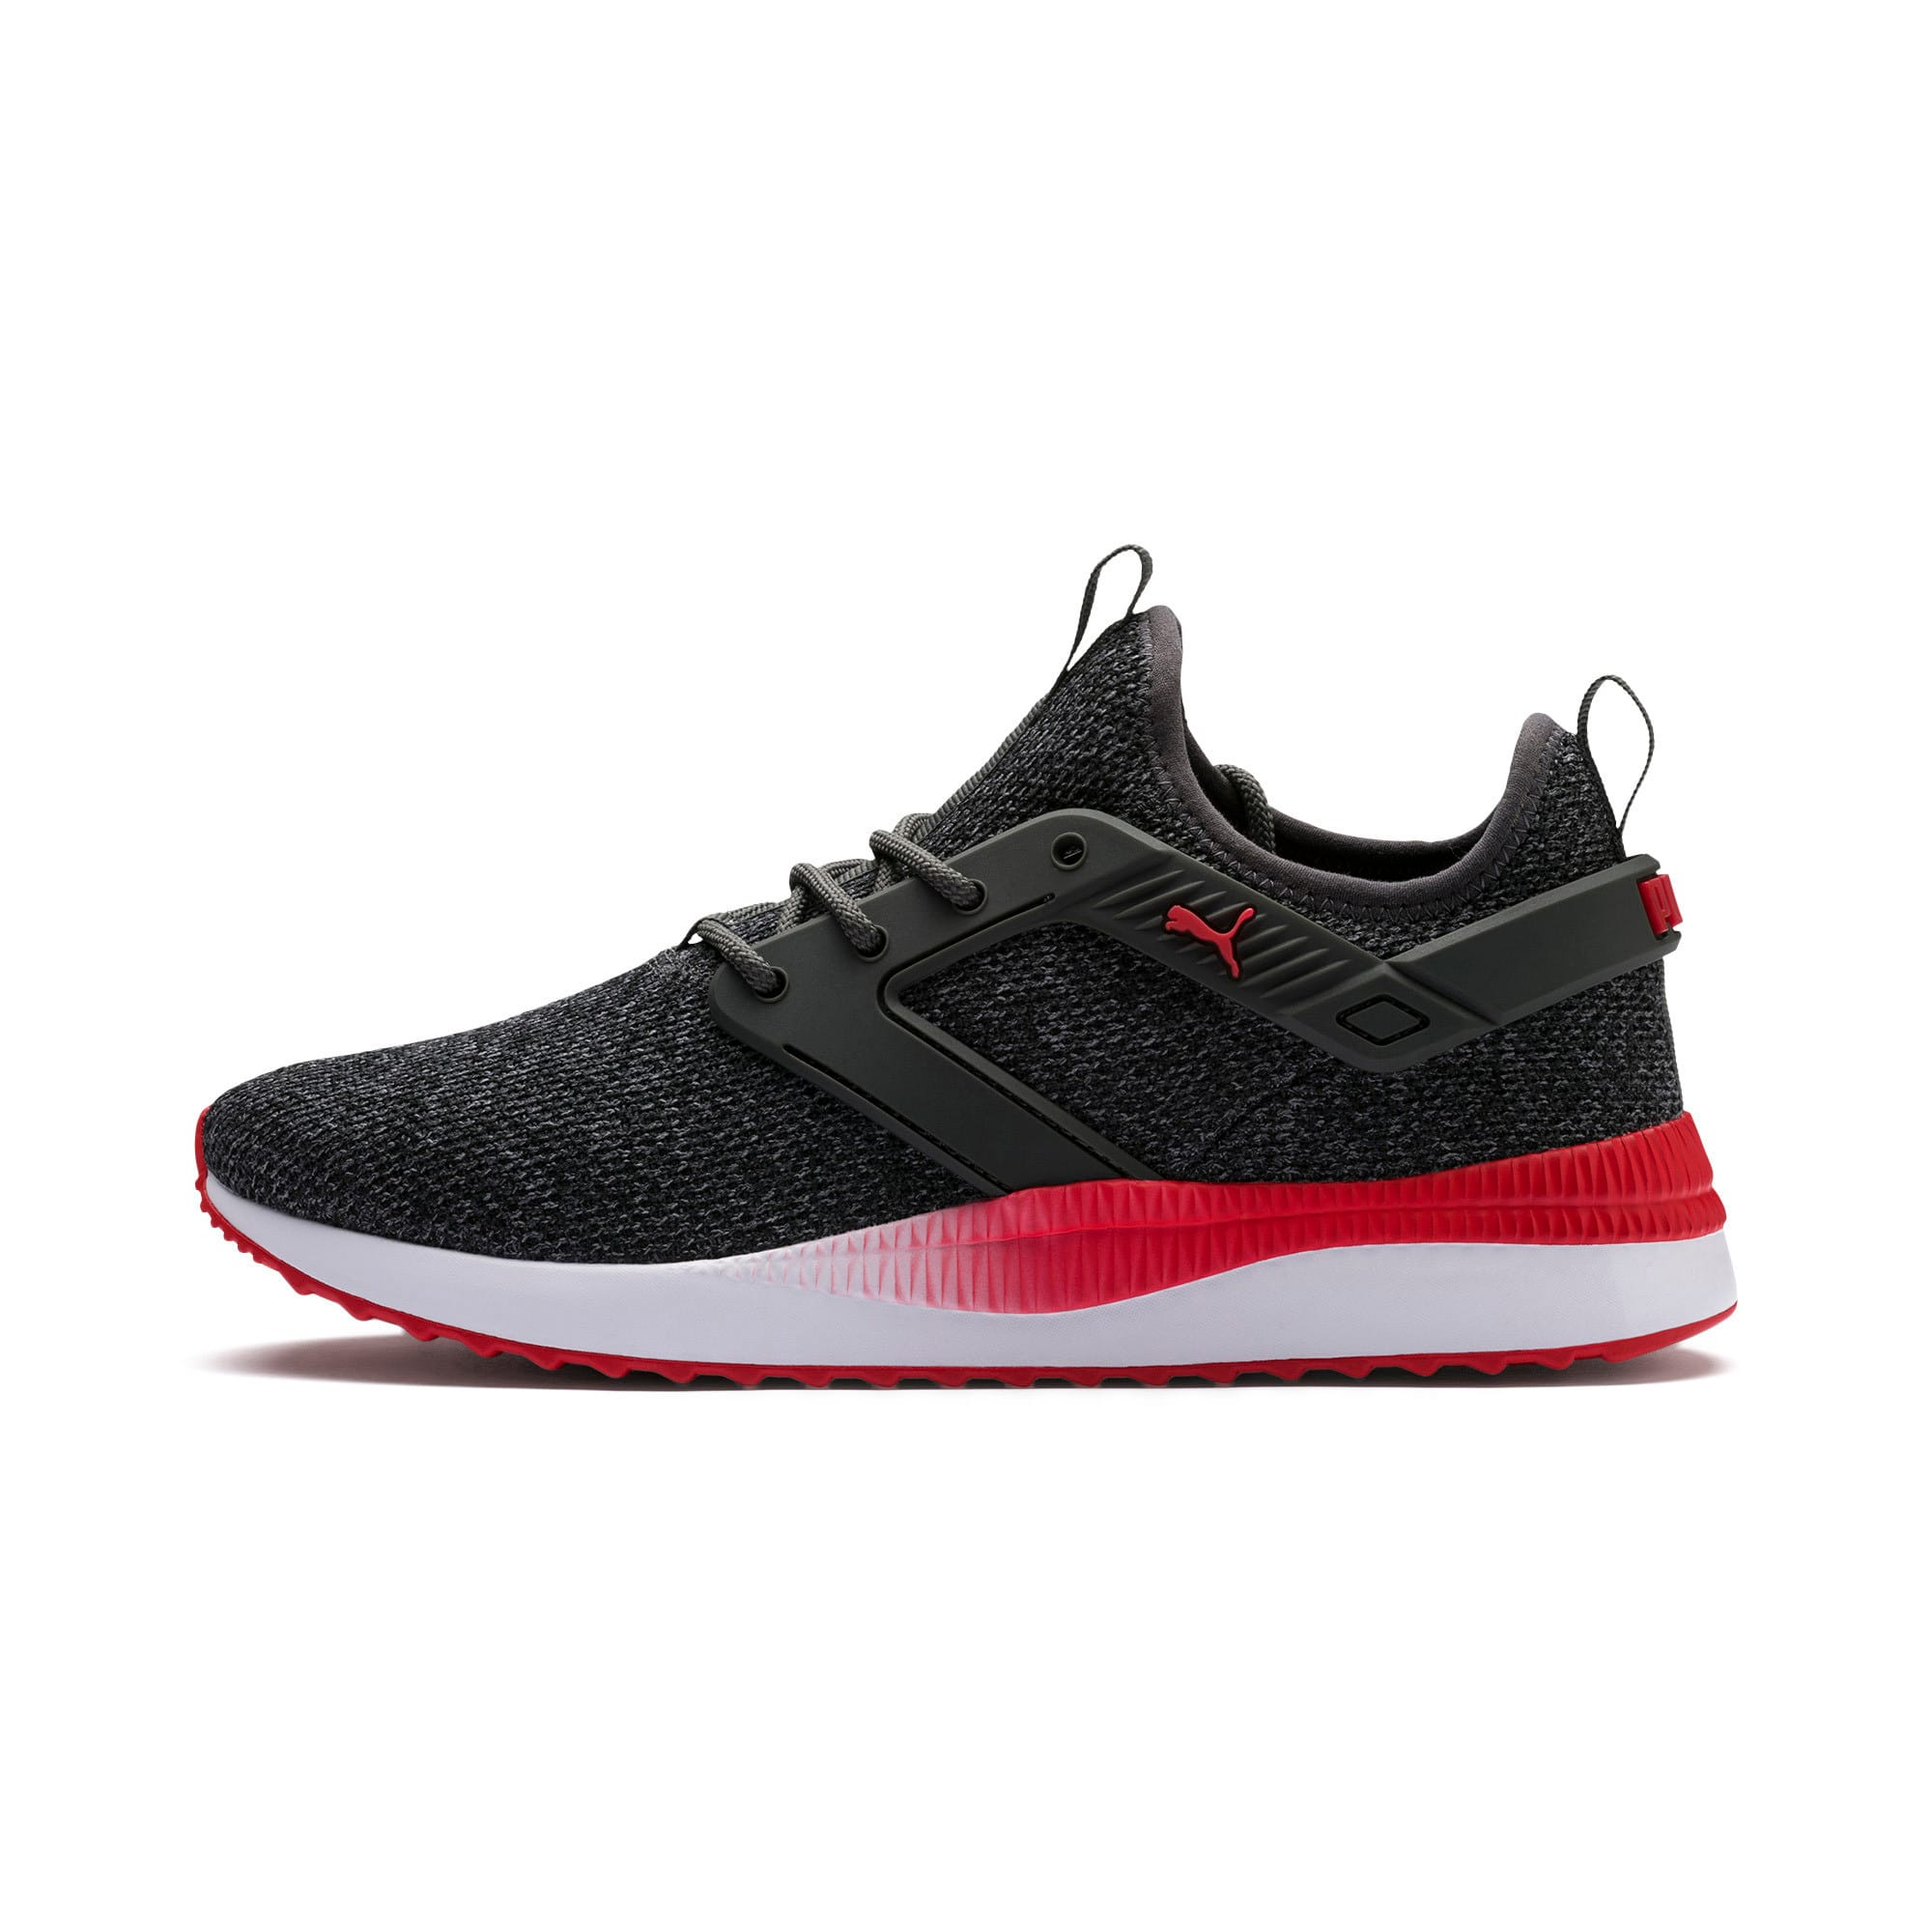 Thumbnail 1 of Pacer Next Excel VariKnit Sneakers, Dark Shadow-High Risk Red, medium